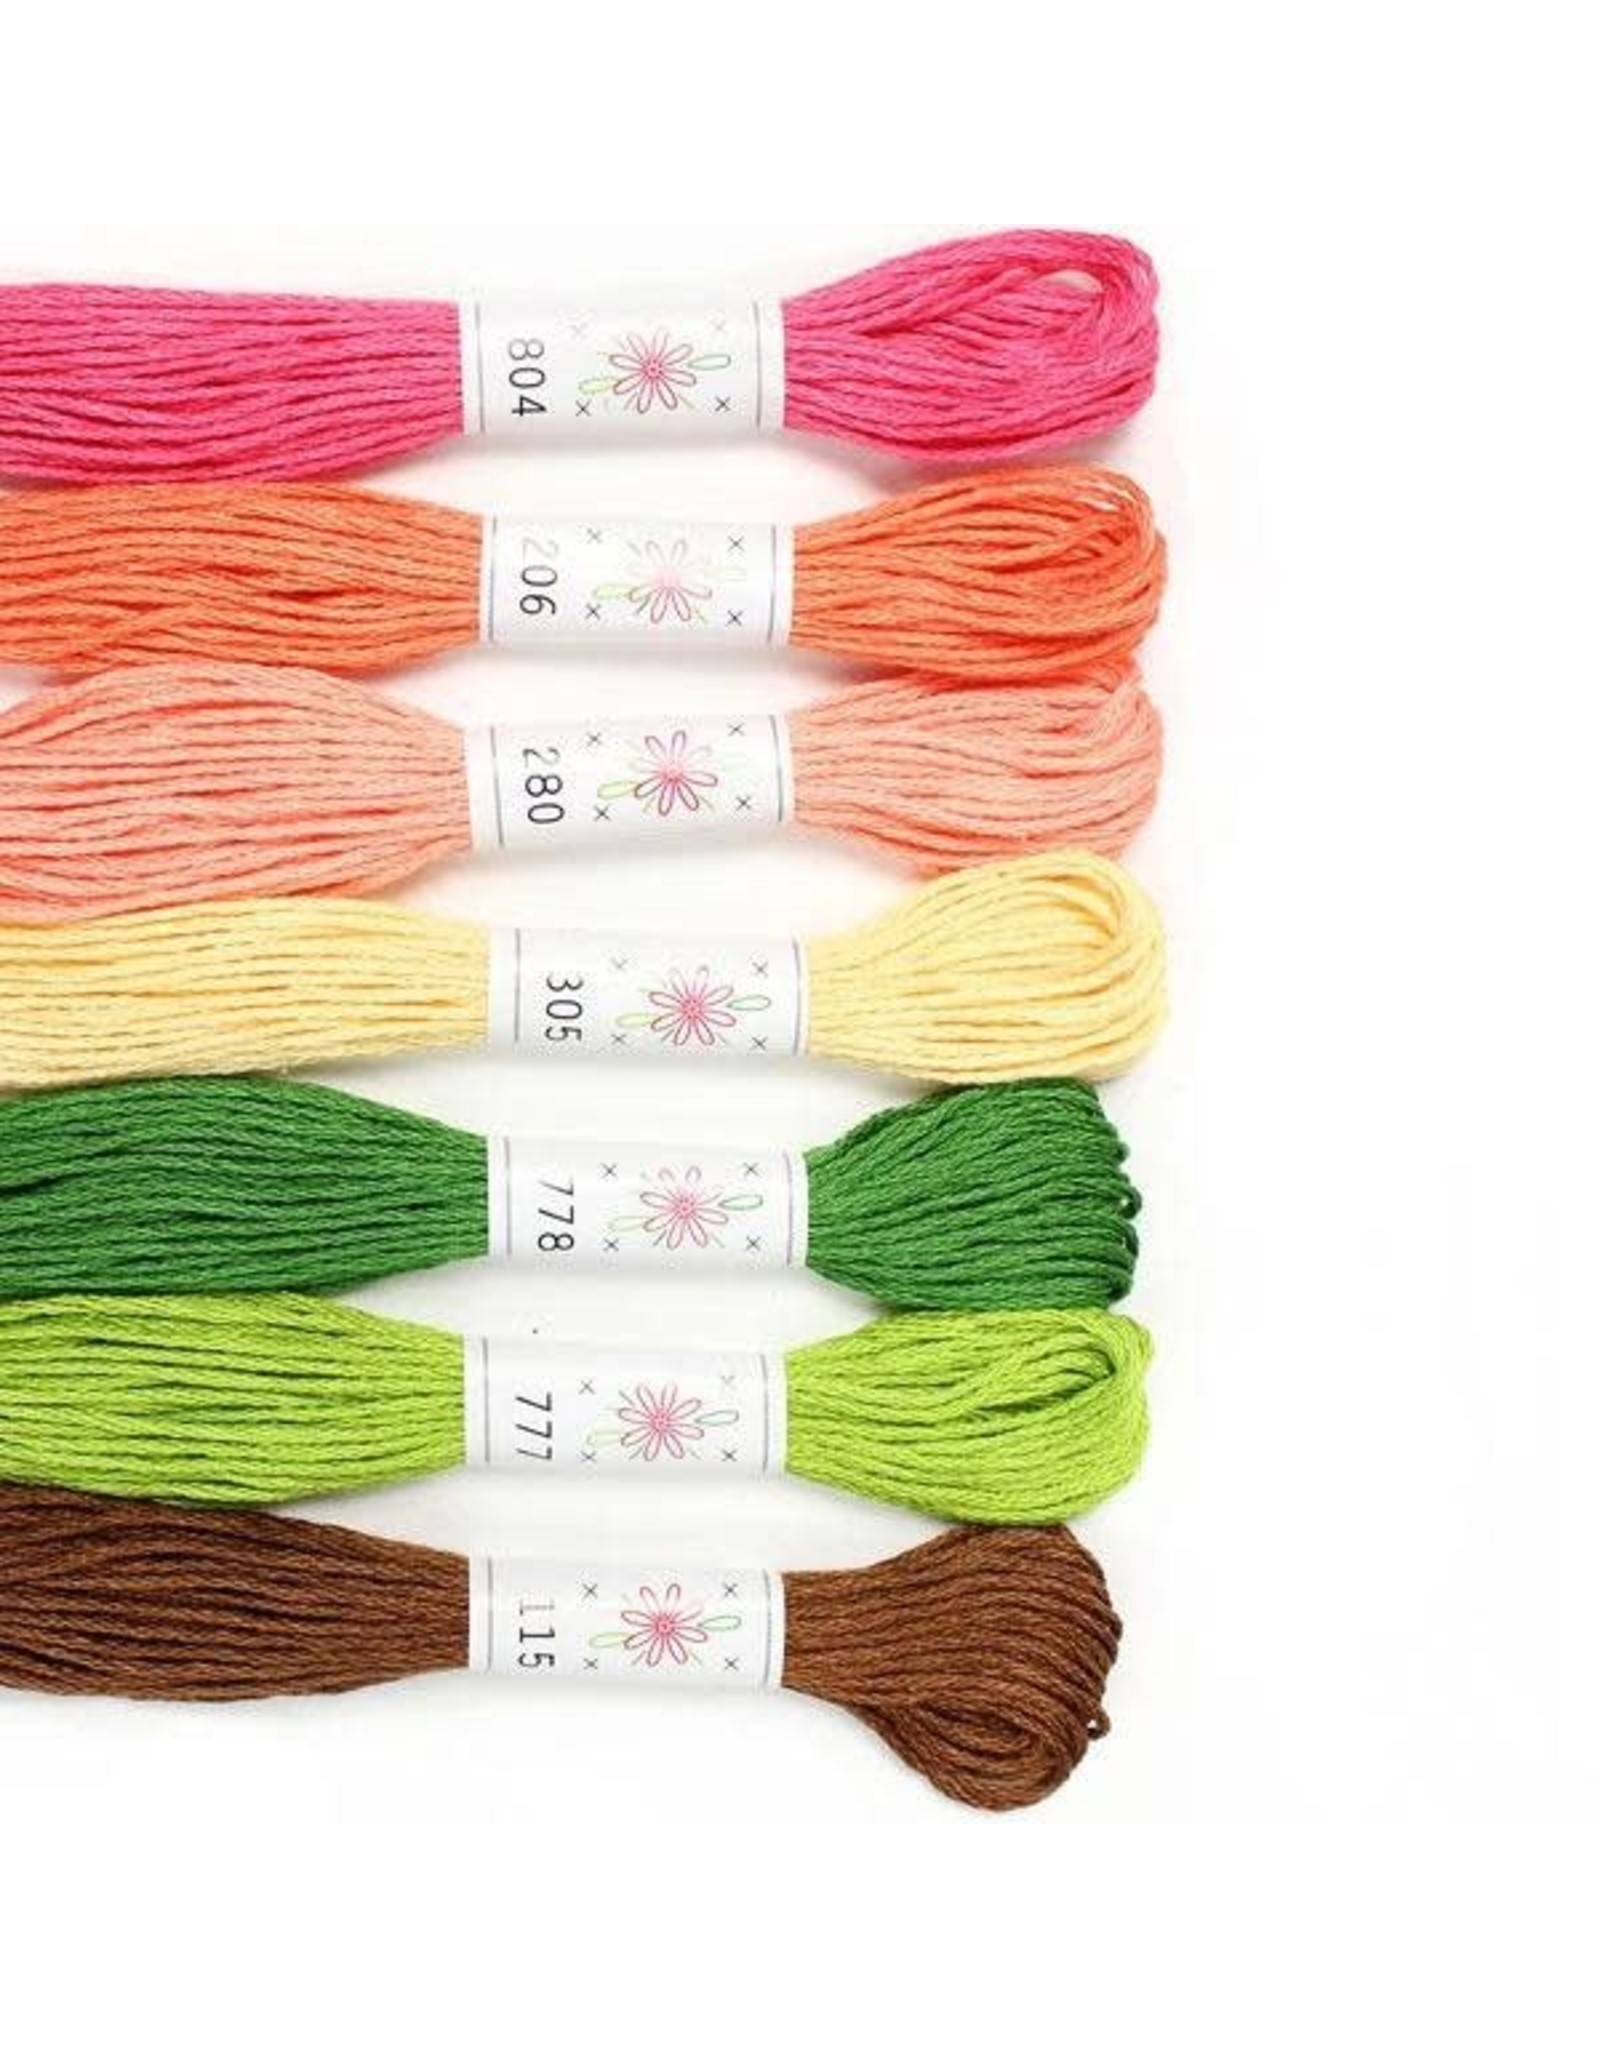 Sublime Stitching Embroidery Floss Set, Flowerbox Palette - Seven 8.75 yard skeins